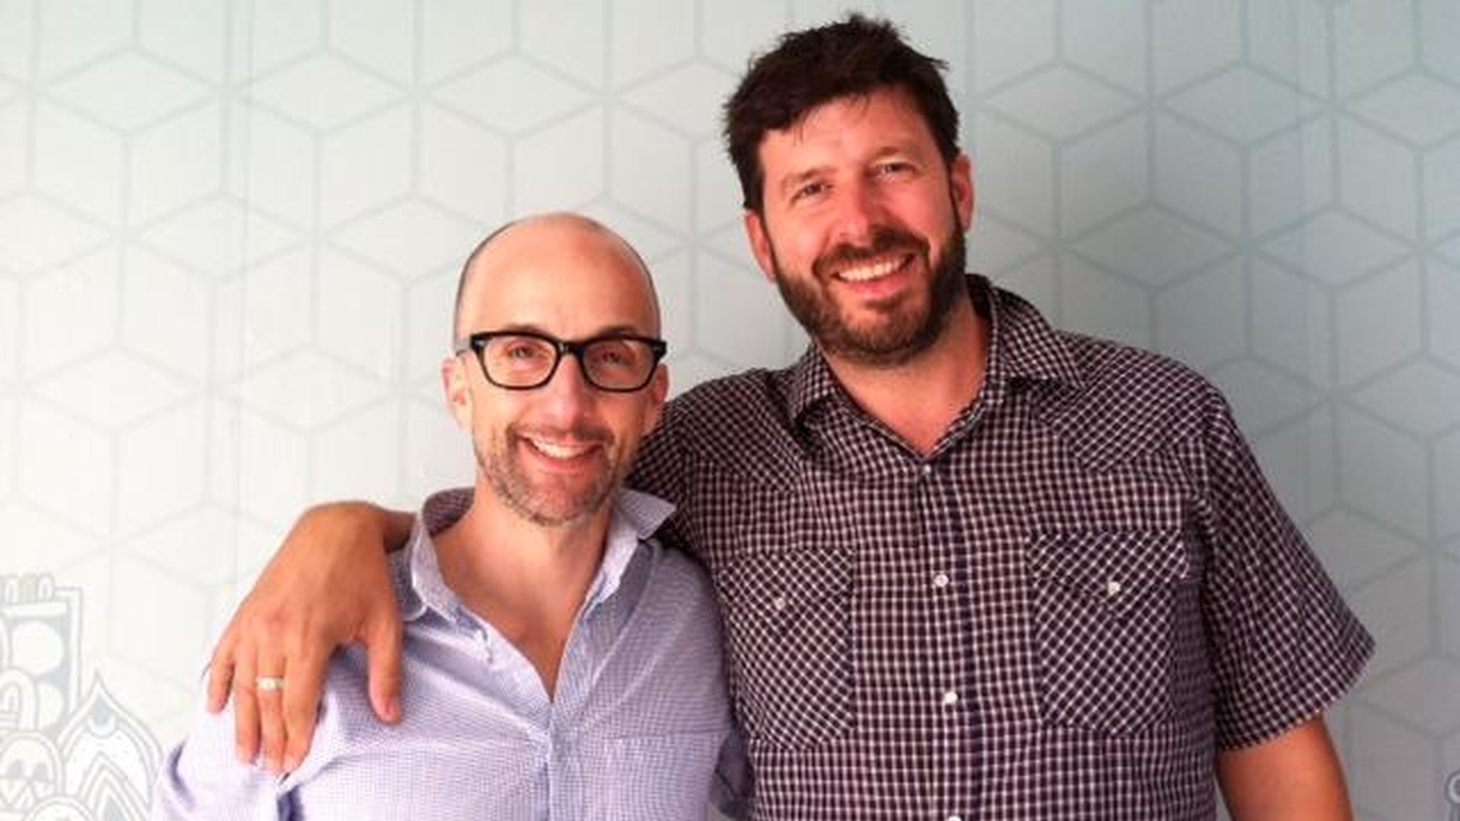 Oscar winning screenwriter Jim Rash shares a song that can combat writer's block, reflects on his youthful misadventures, and picks two timeless soul singers.